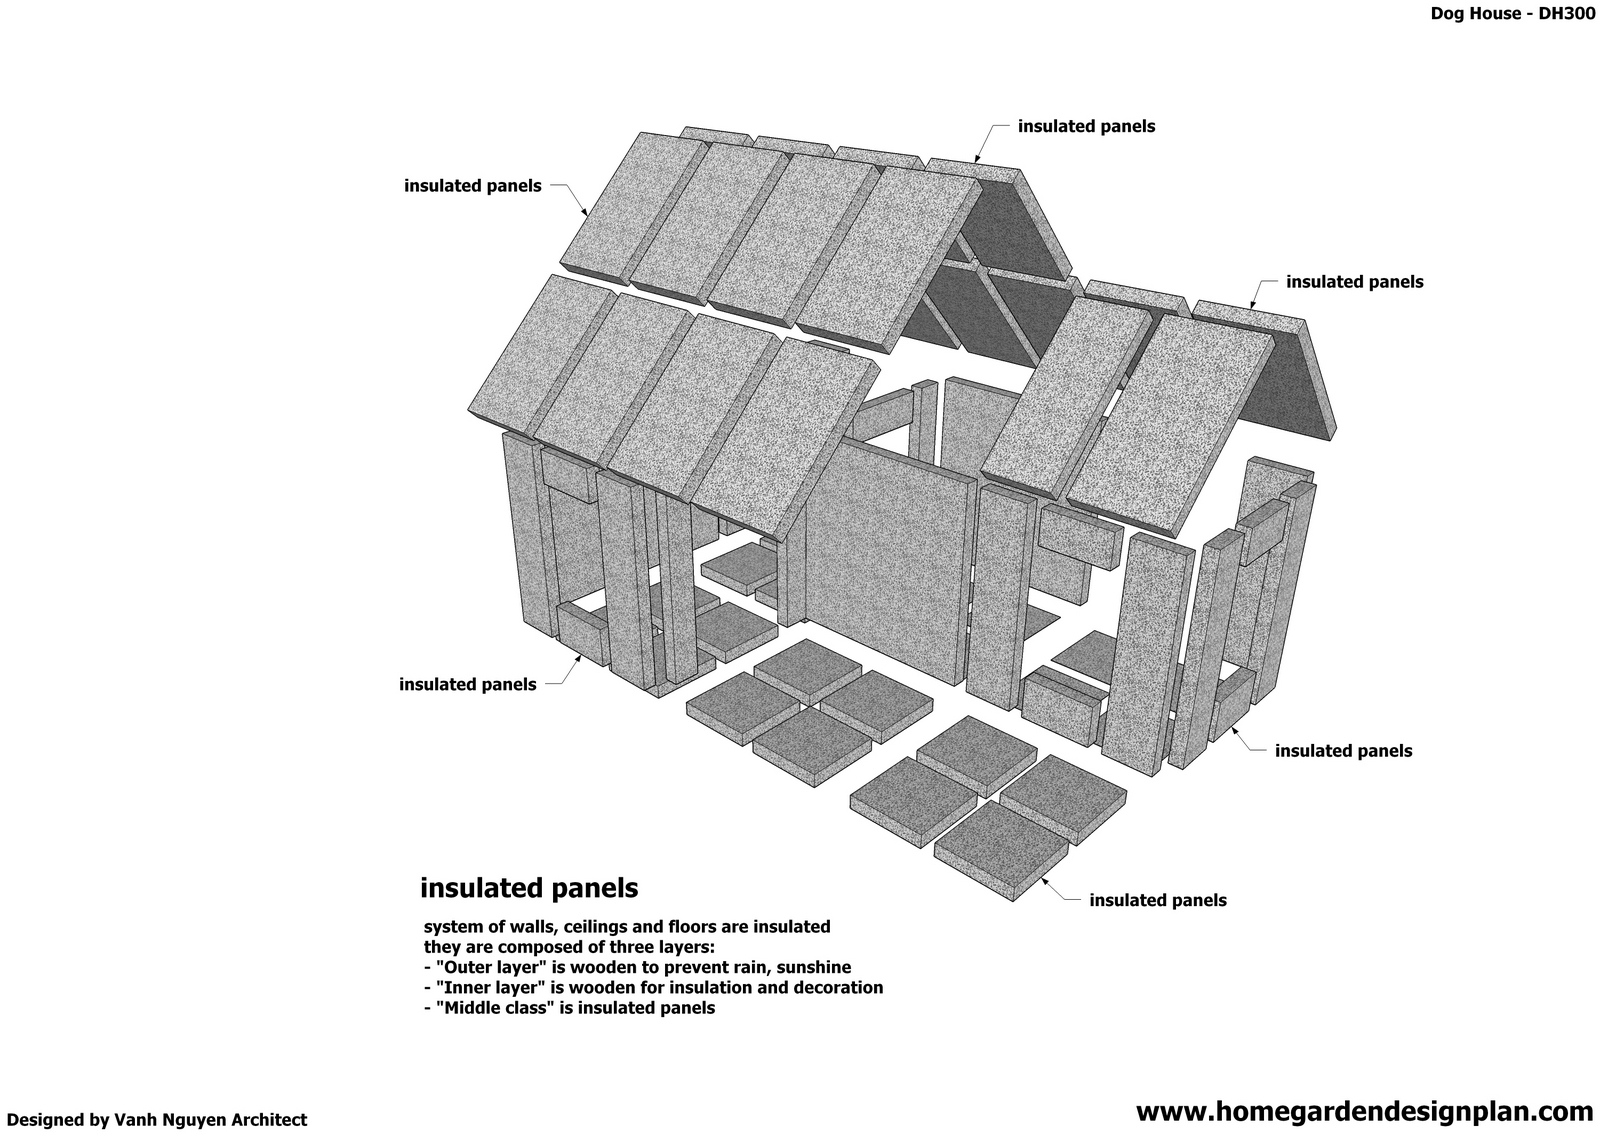 Home garden plans dh300 dog house plans free how to for Insulated dog house plans pdf